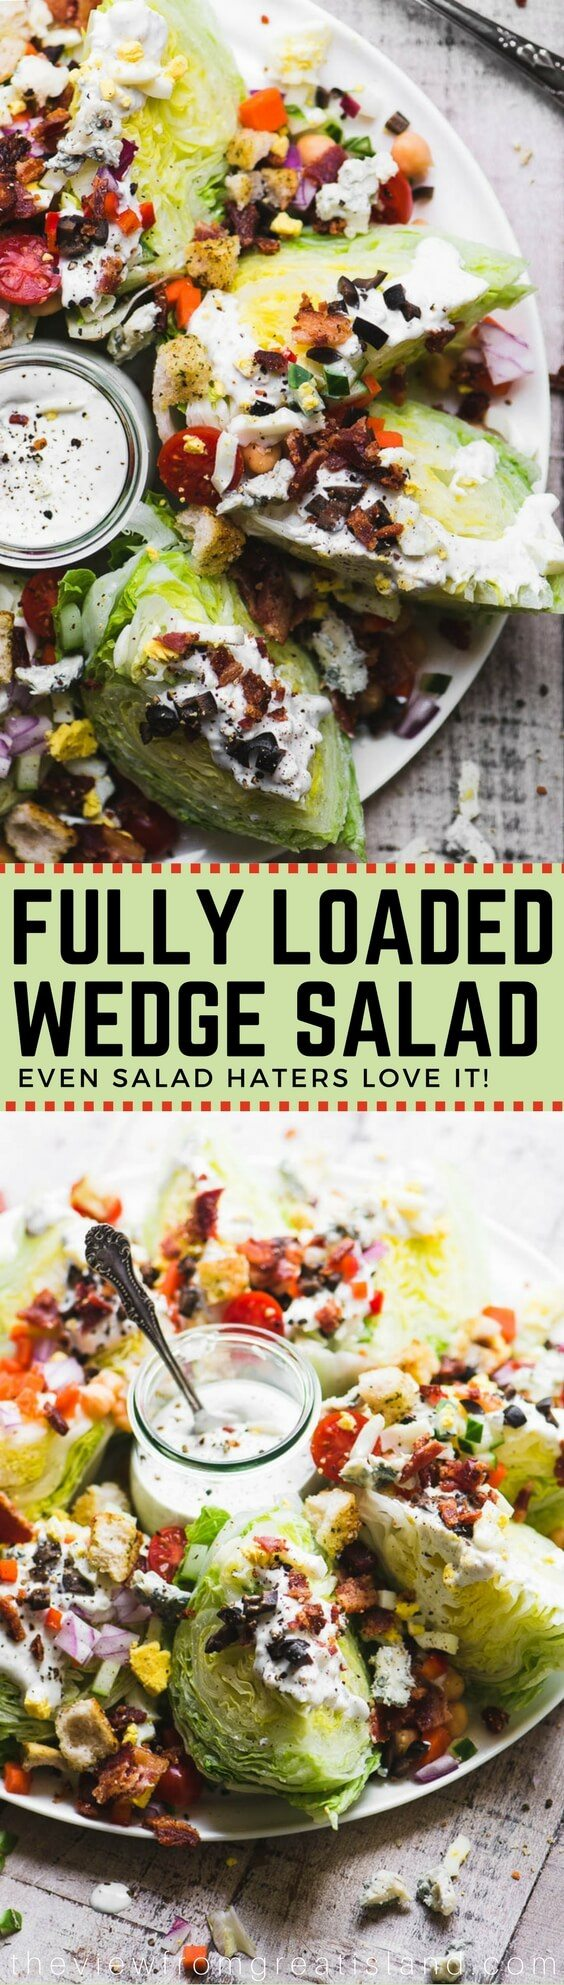 The Fully Loaded Wedge Salad is the Queen of salads ~ the salad even a salad hater can't resist, with hearts of iceberg lettuce piled high with goodies like bacon, eggs, croutons, black olives, creamy blue cheese dressing, and a few healthy veggies for good measure! #salad #heartsoflettuce #iceberglettuce #loadedsalad #partysalad #memorialday #4thofjuly #summersalad #bluecheesedressing #wedgesalad